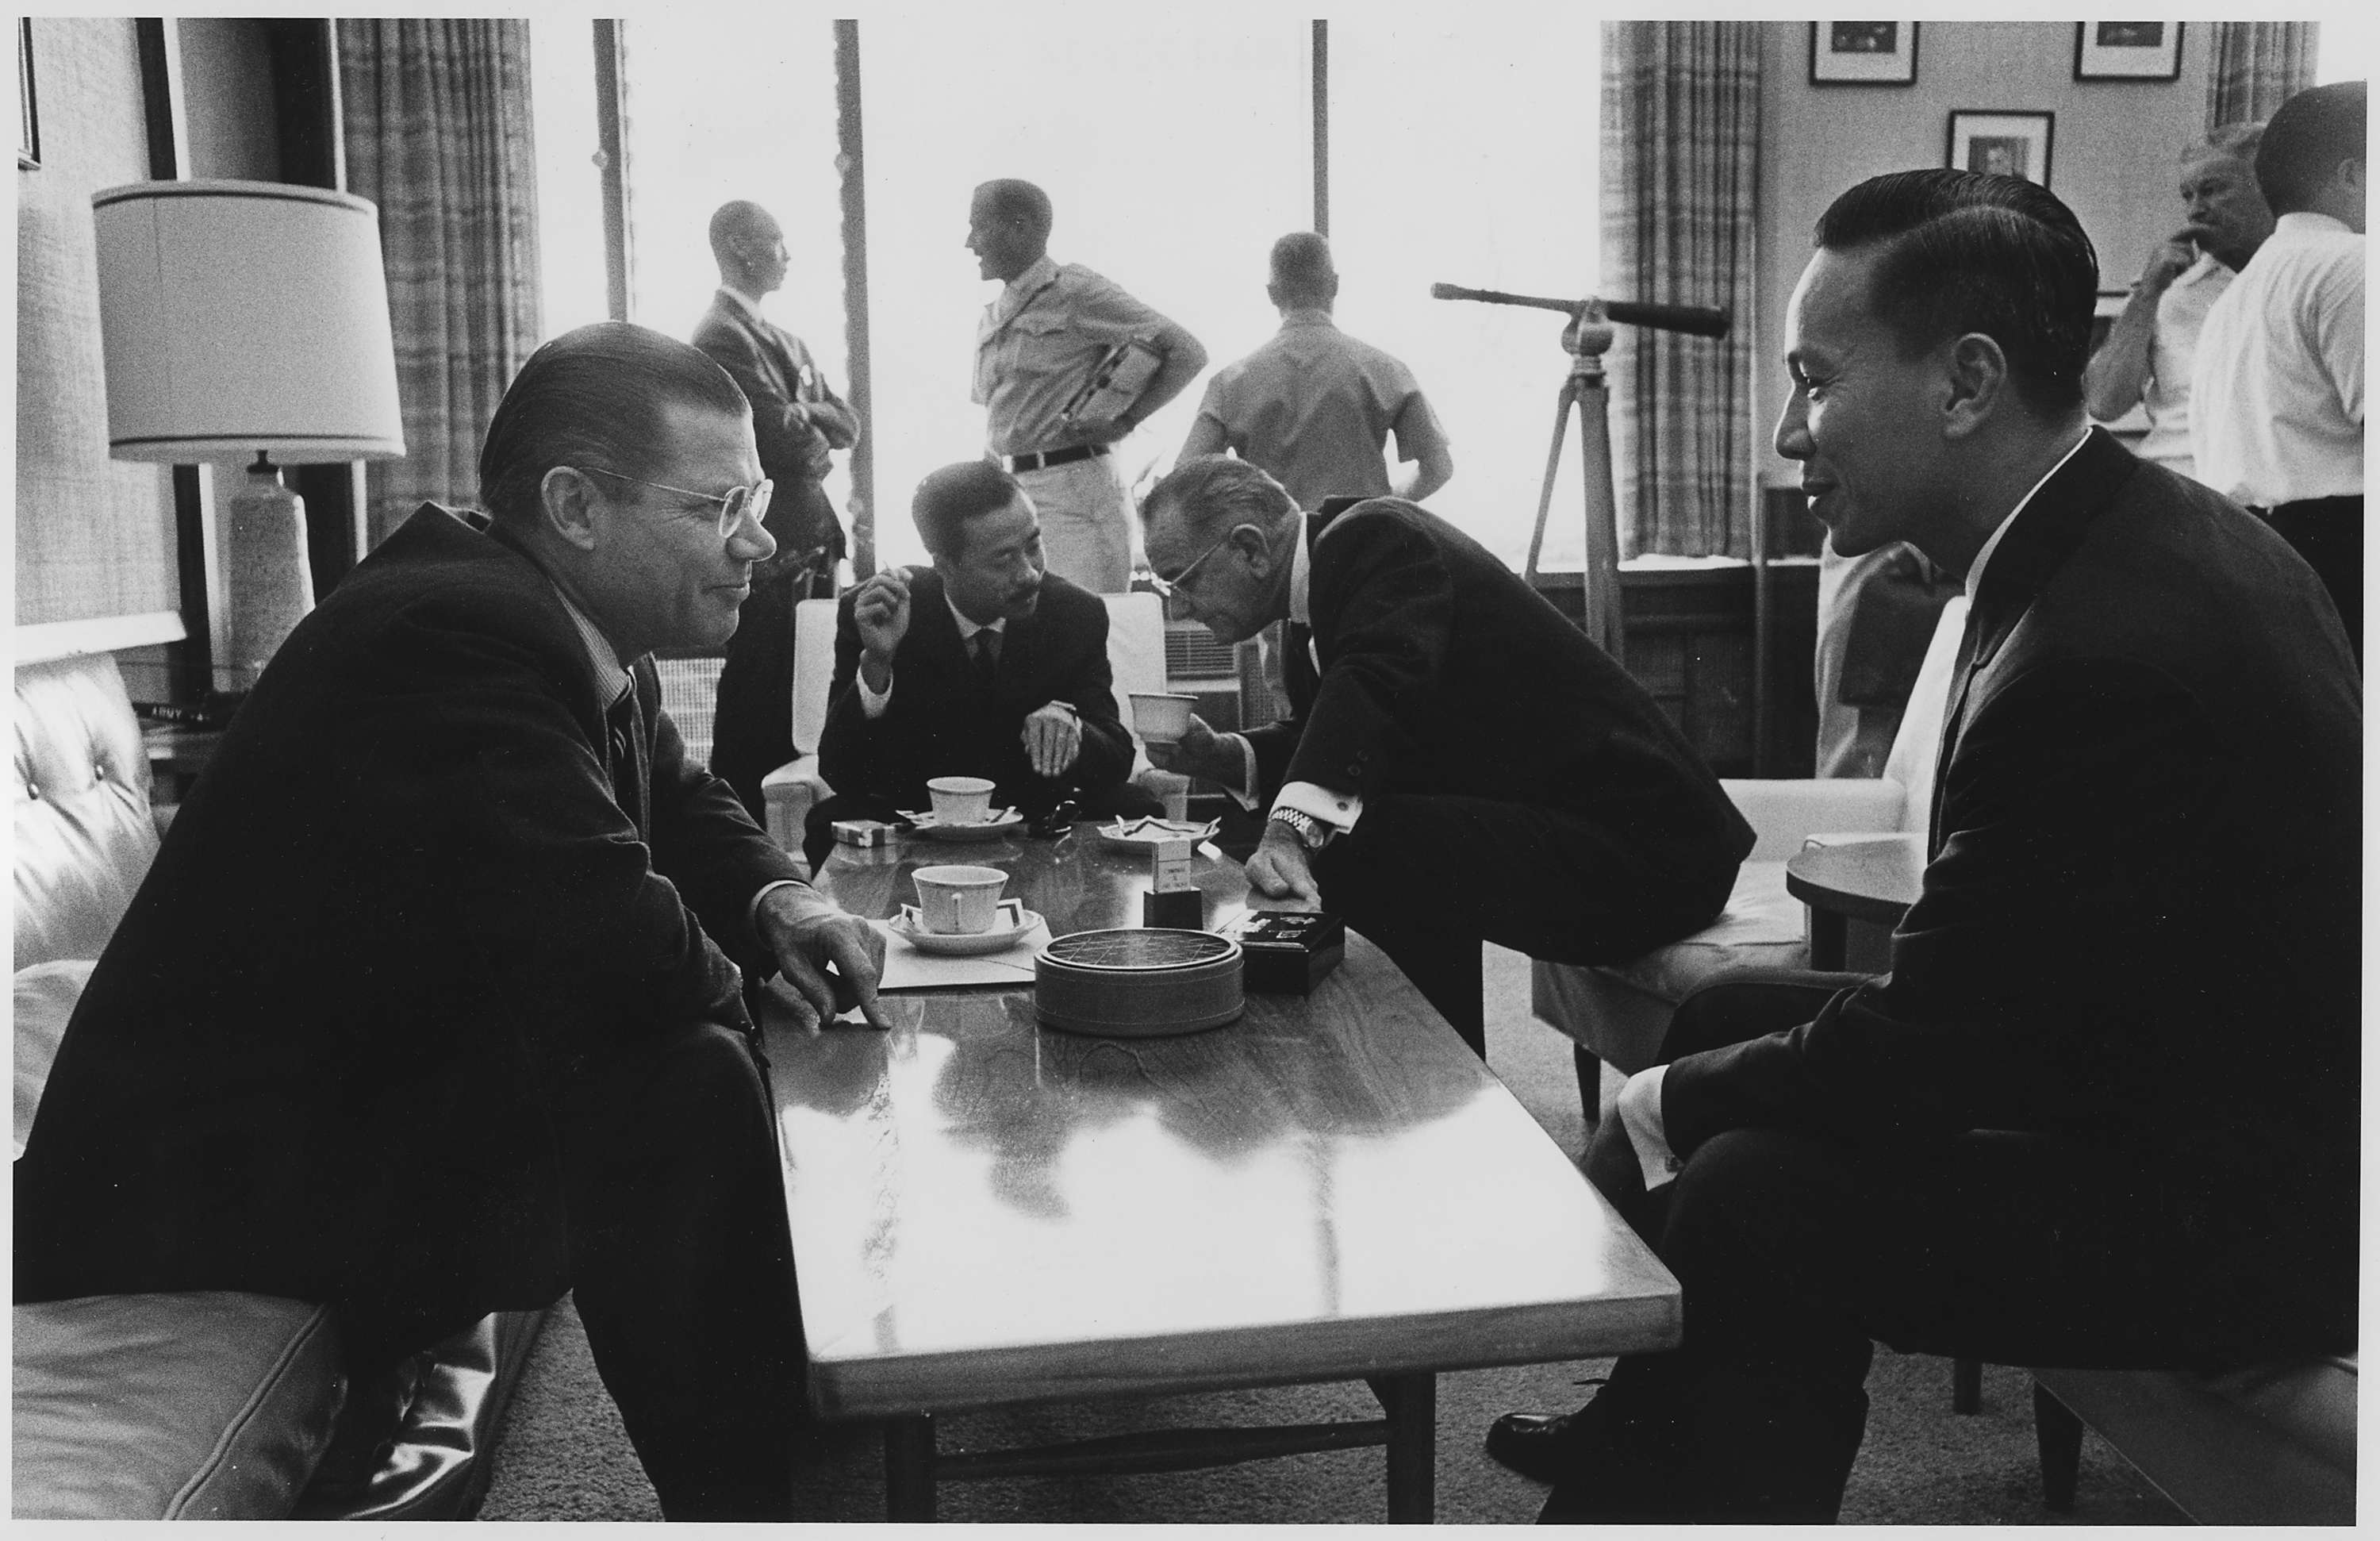 Honolulu Conference: Secretary of Defense McNamara, Prime Minister Ky, President Johnson and Lieutenant General Van Thieu